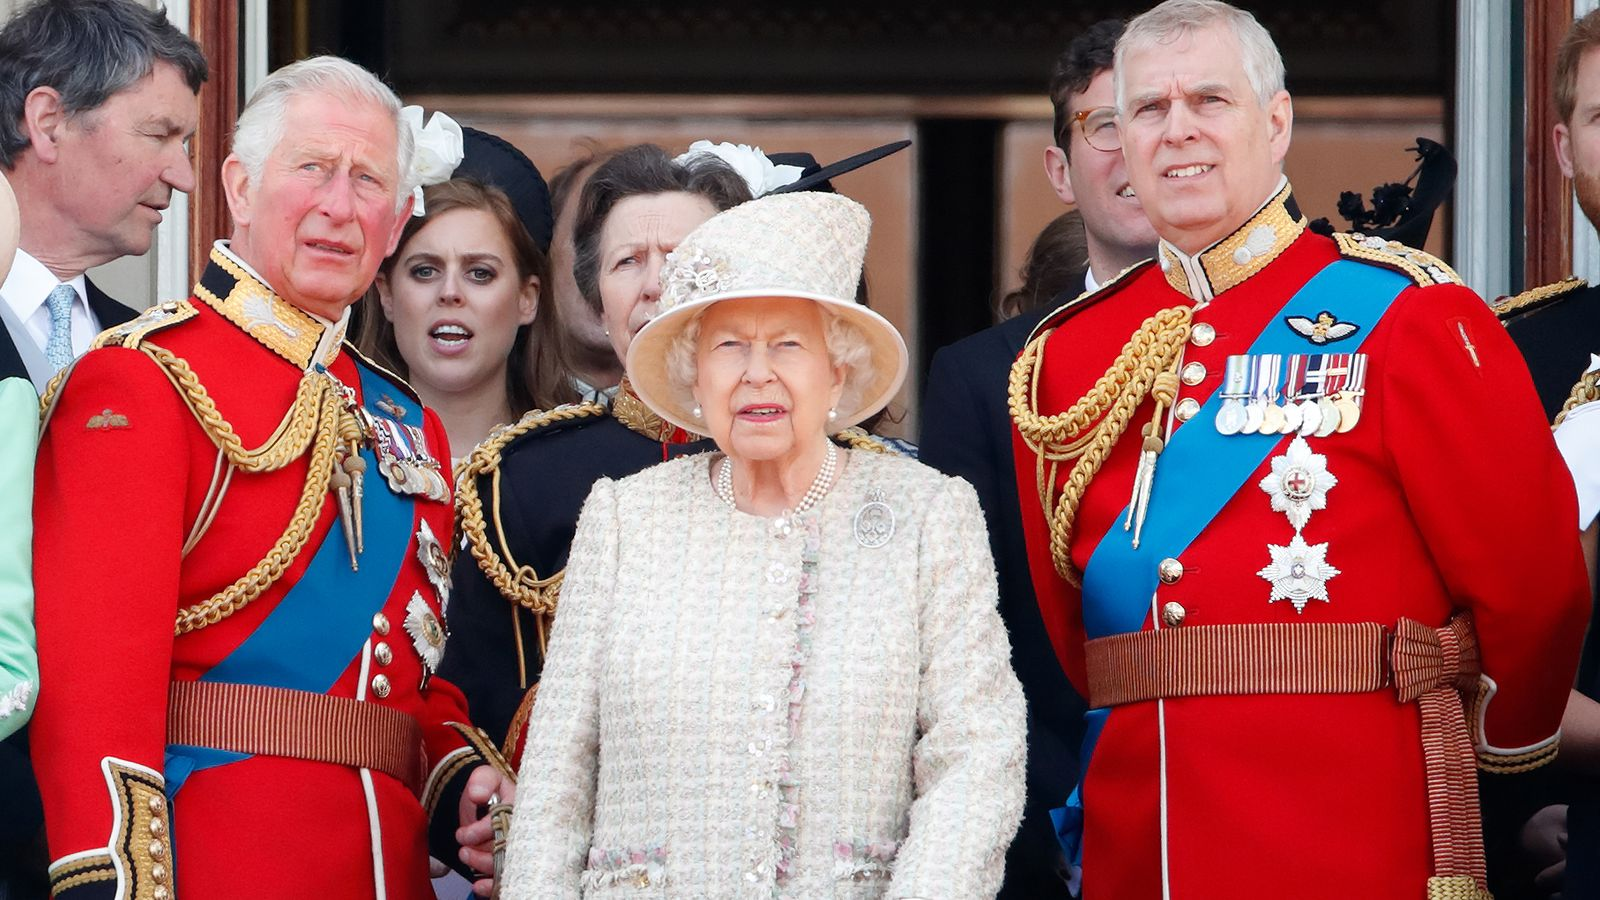 Three royal stories in one day: Windsors' work faces being overshadowed